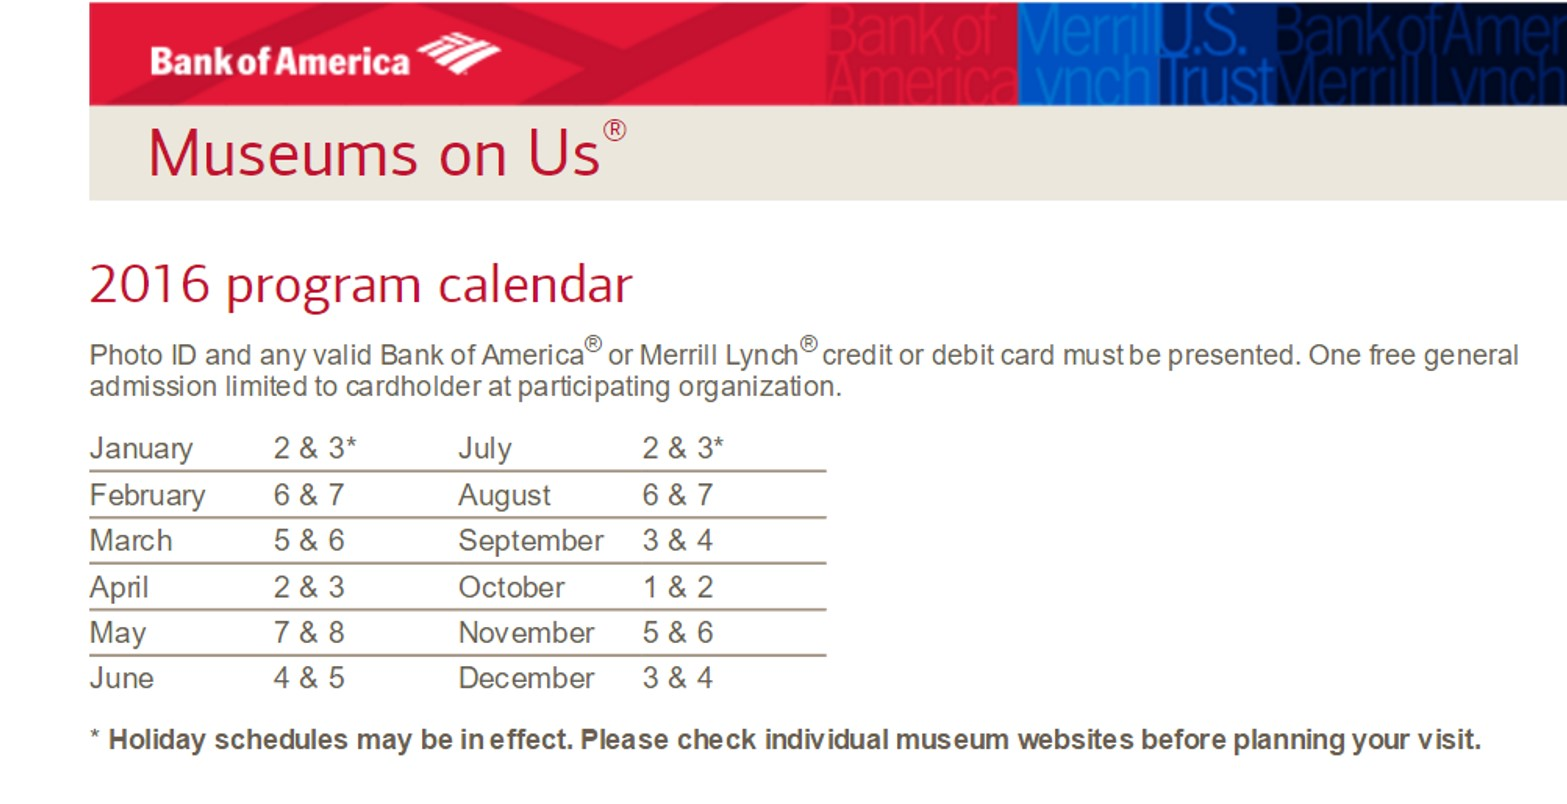 http://museums.bankofamerica.com/mobile